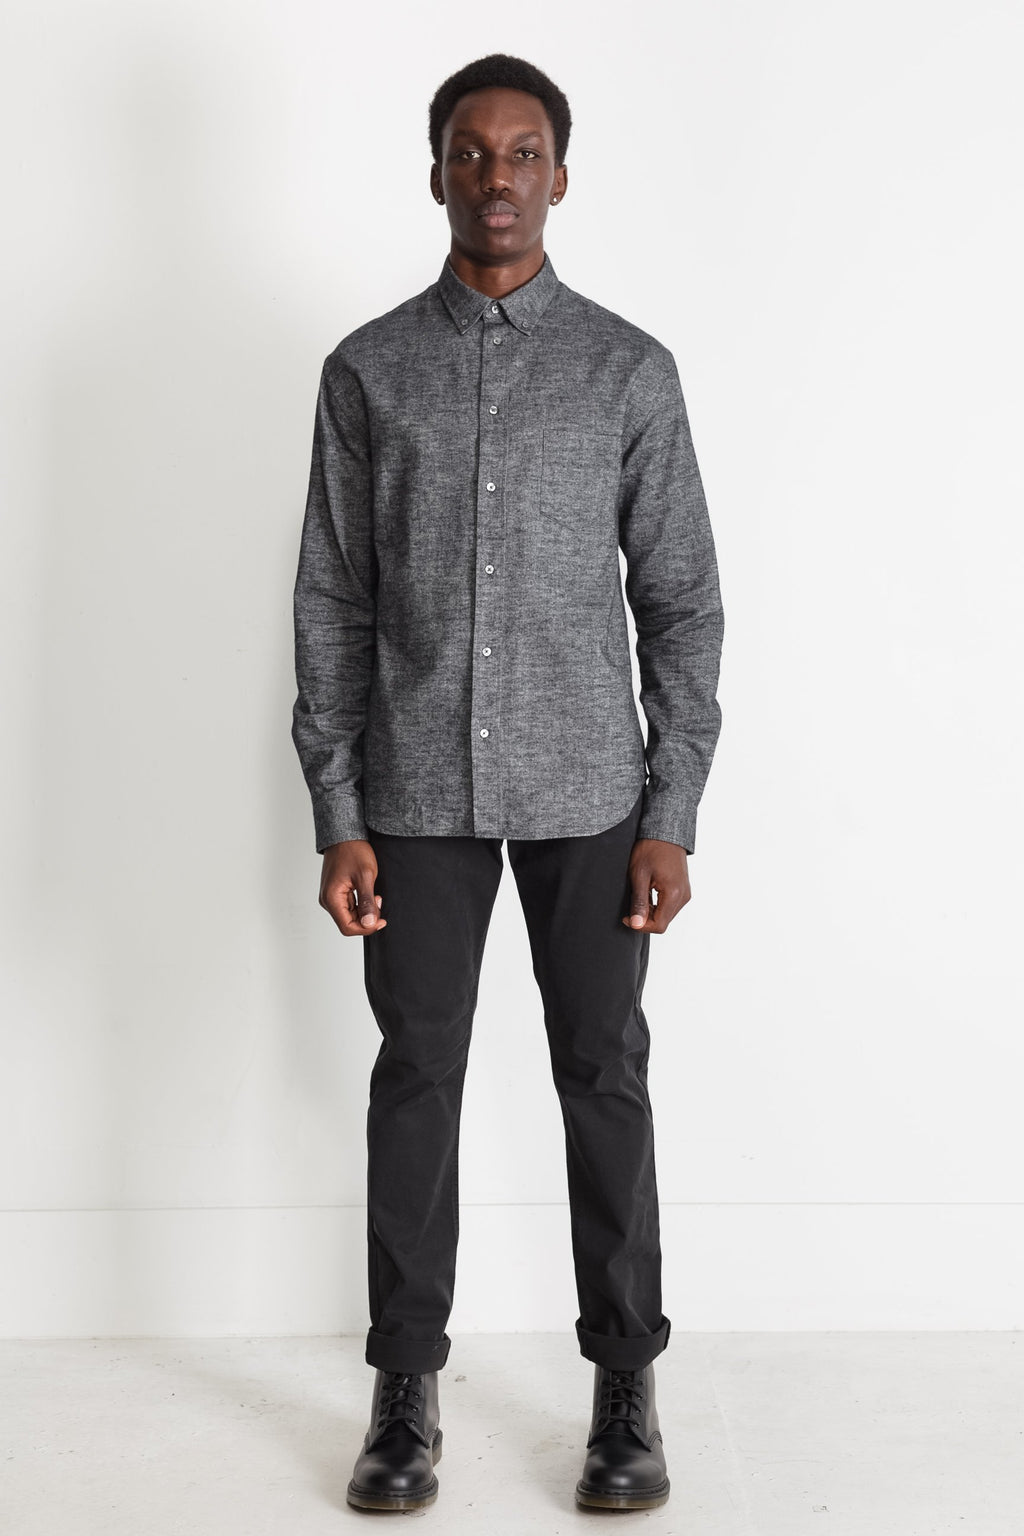 Japanese Brushed Twill Flannel in Black 02